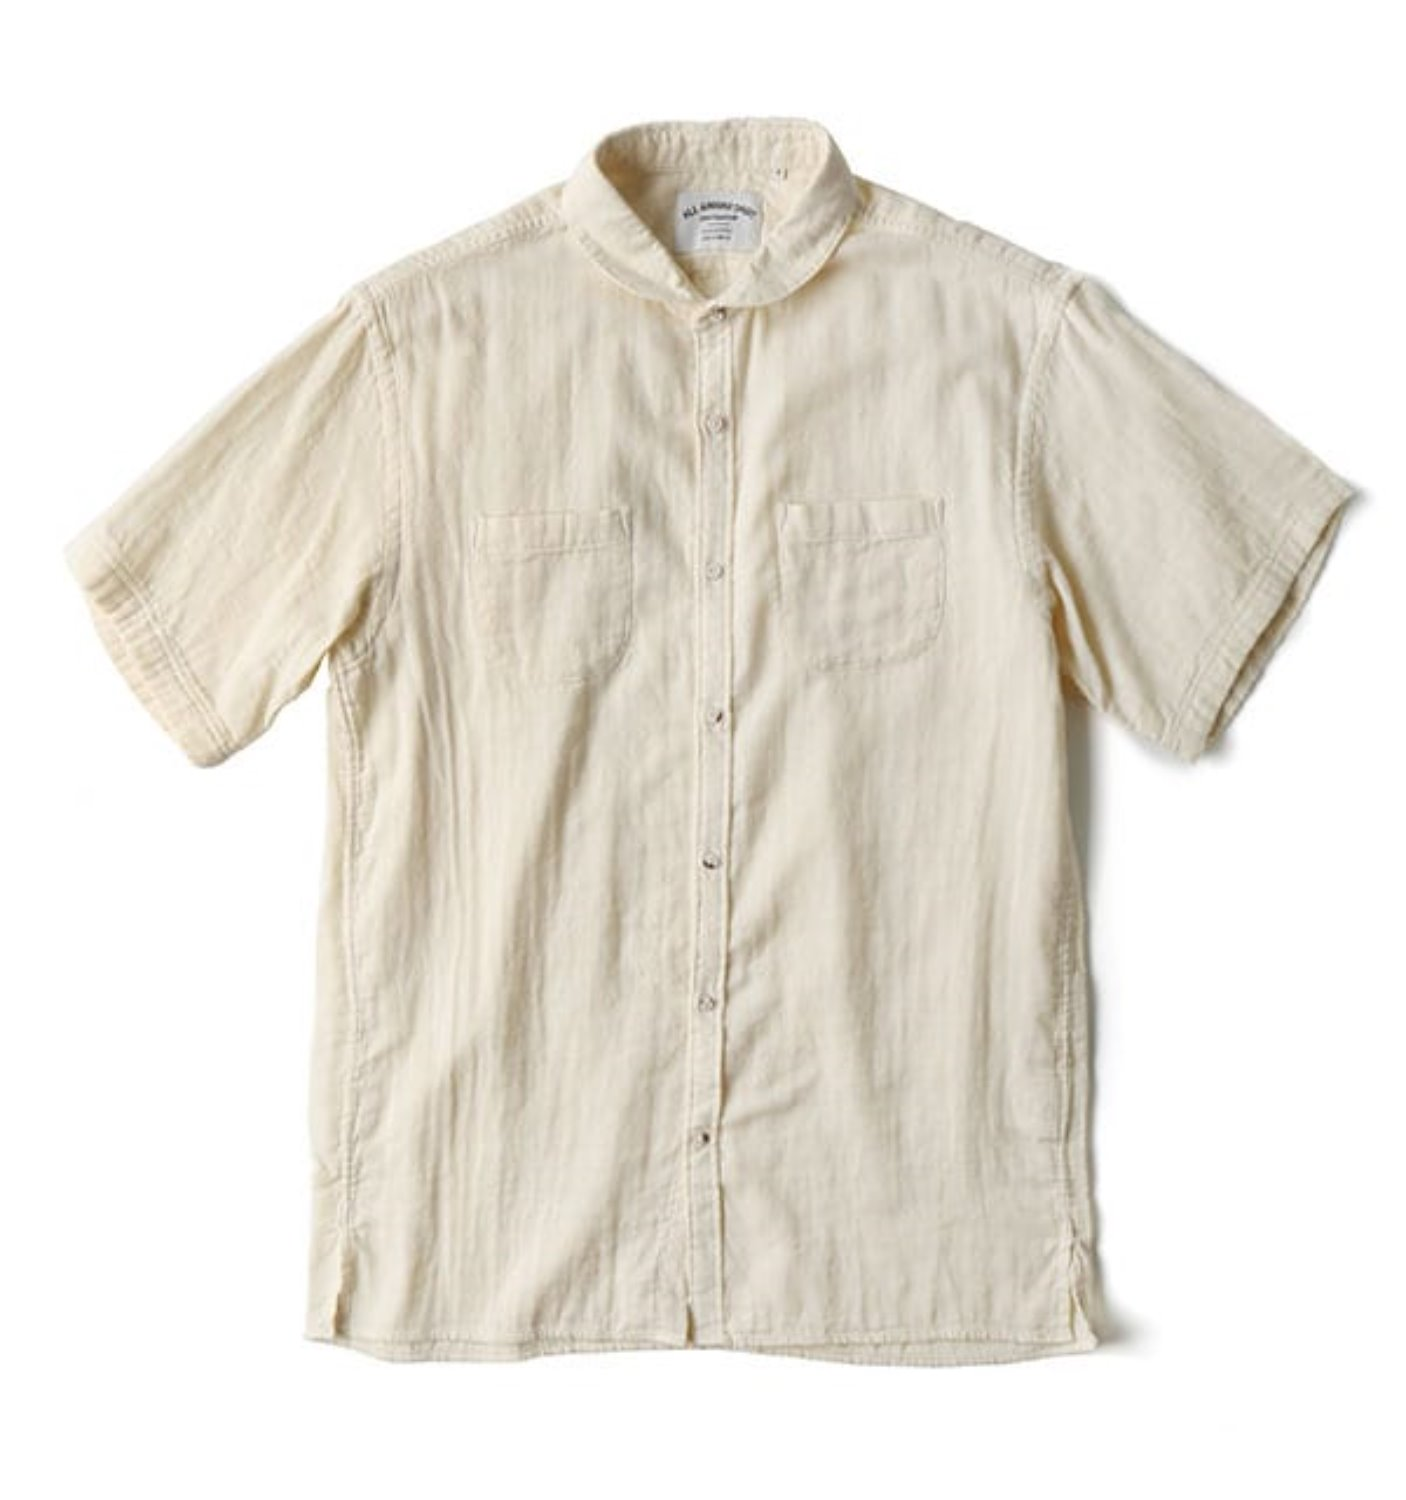 BAS03 IVORY SOLID DOUBLE CLOTH SHIRT